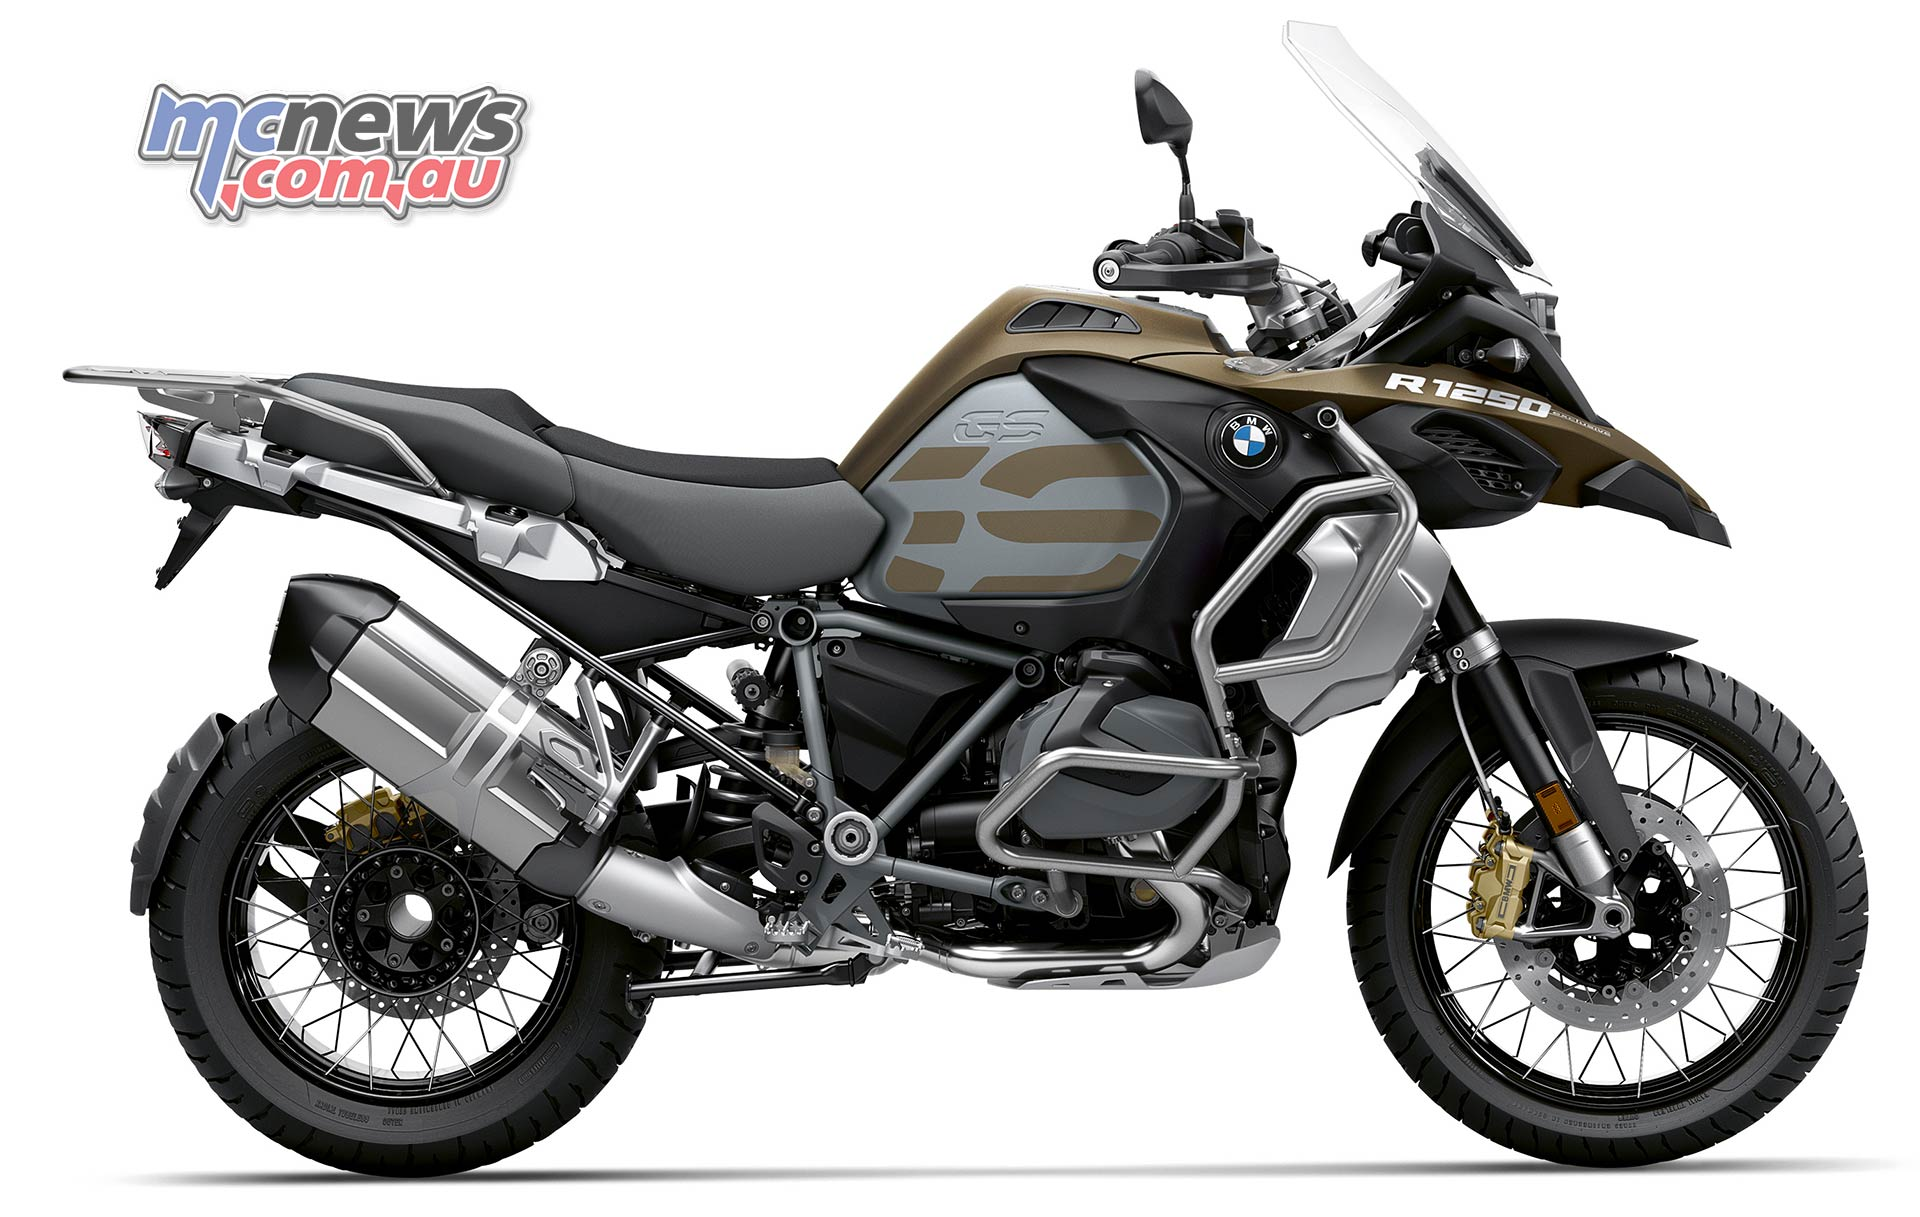 2019 bmw r 1250 gs adventure more mumbo sharp looks. Black Bedroom Furniture Sets. Home Design Ideas